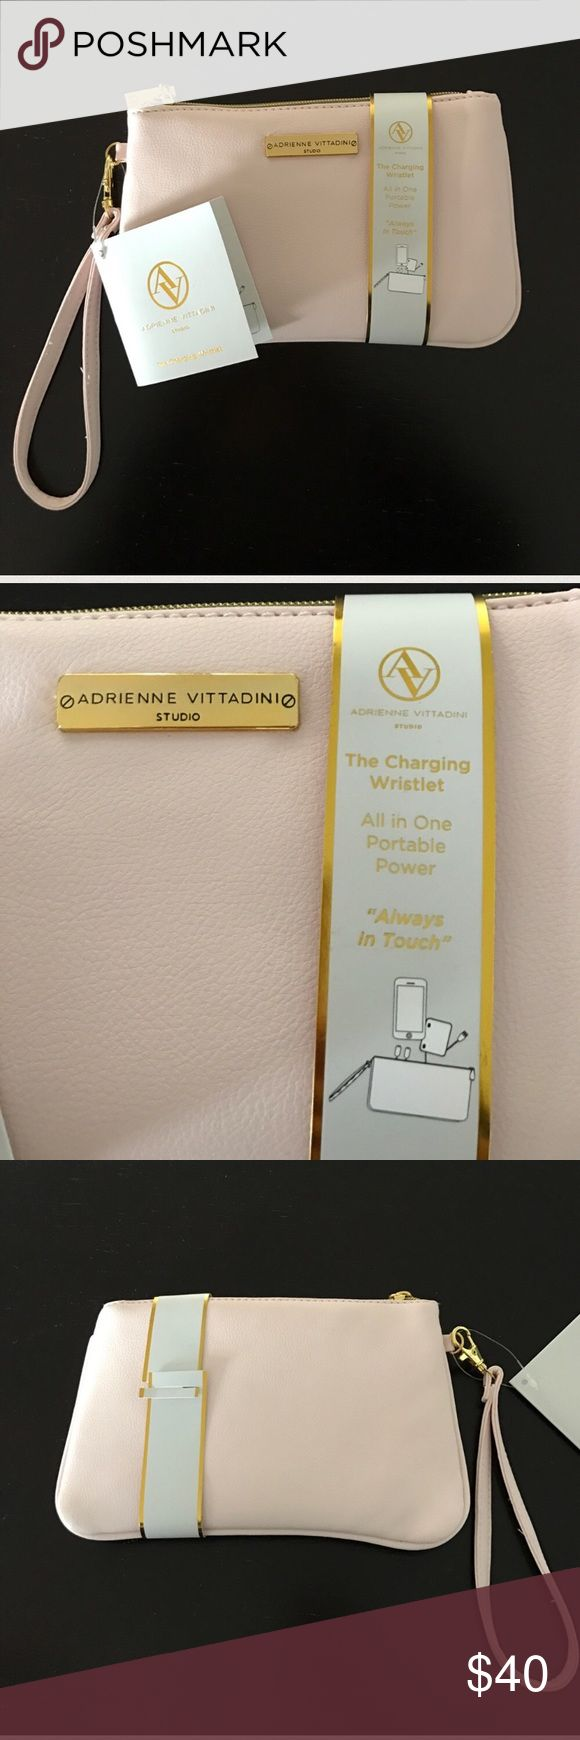 NWT Adrienne Vittadini Charging Wristlet All in one portable power wristlet. Comes with removable, reusable, and Portable USB charger. Adrienne Vittadini Bags Clutches & Wristlets